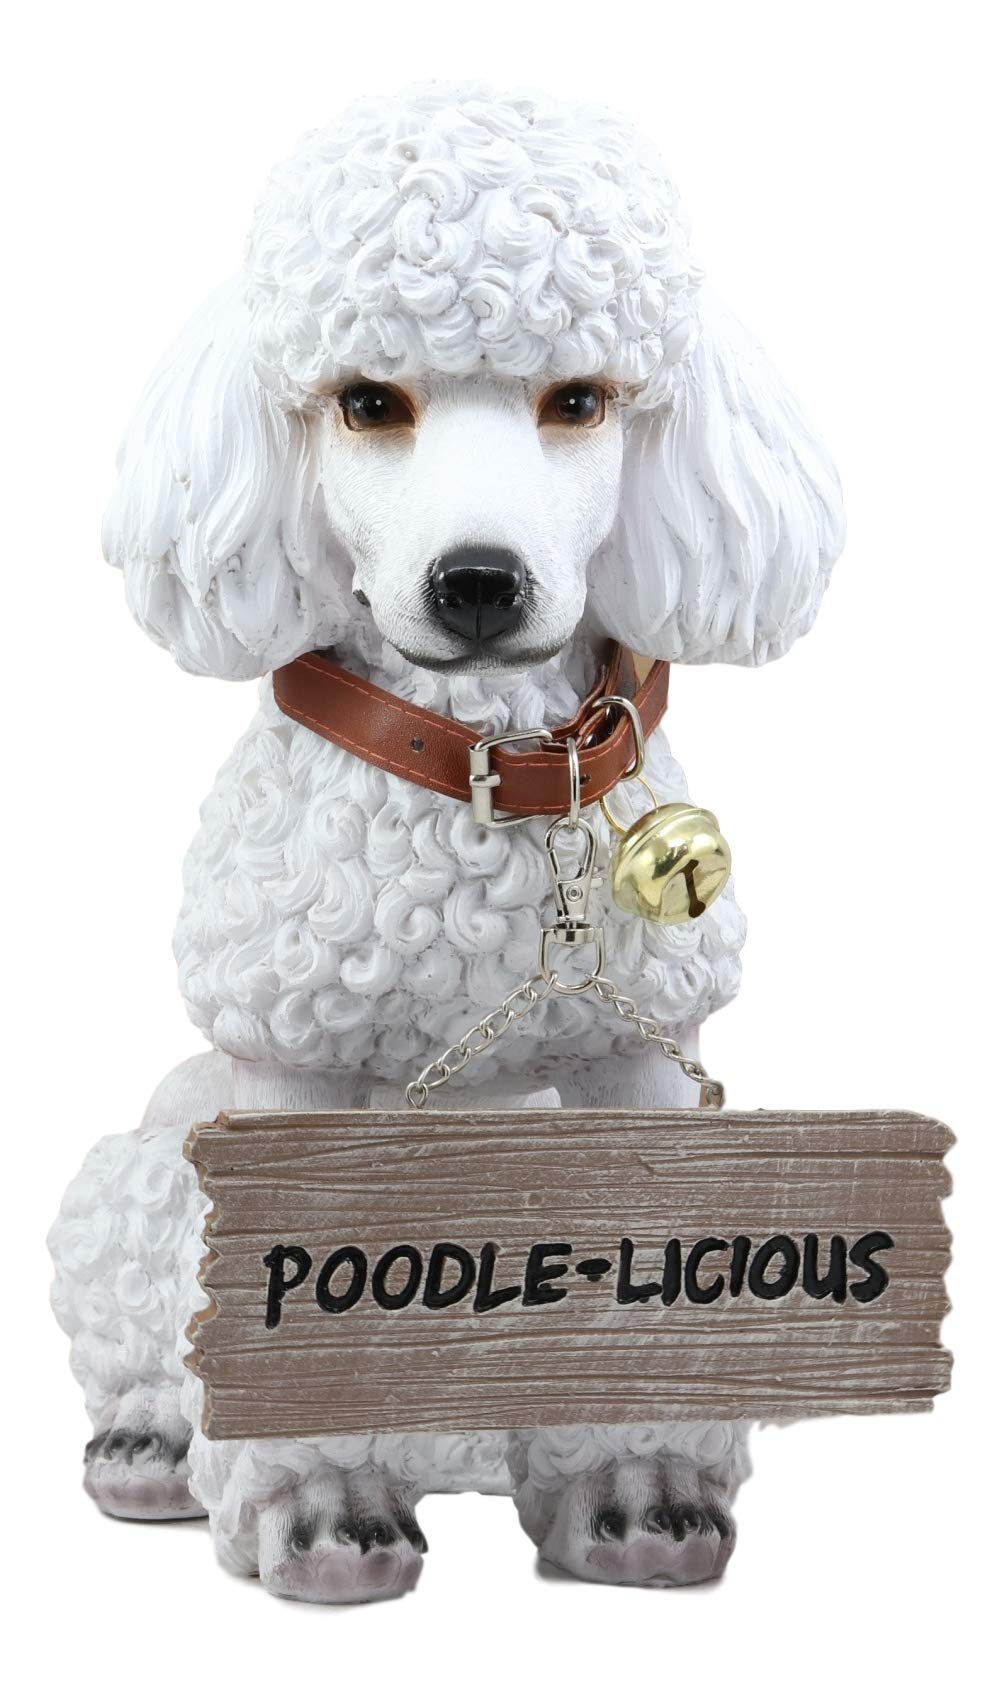 Ebros Lifelike Realistic Groomed White French Poodle Dog Fifi Welcome Greeter Statue 11 5 Tall Pedigree Dogs Breed Collectible Home Patio Decor Figurine With Jingle Collar Greeting Signs Buy Online In Botswana At